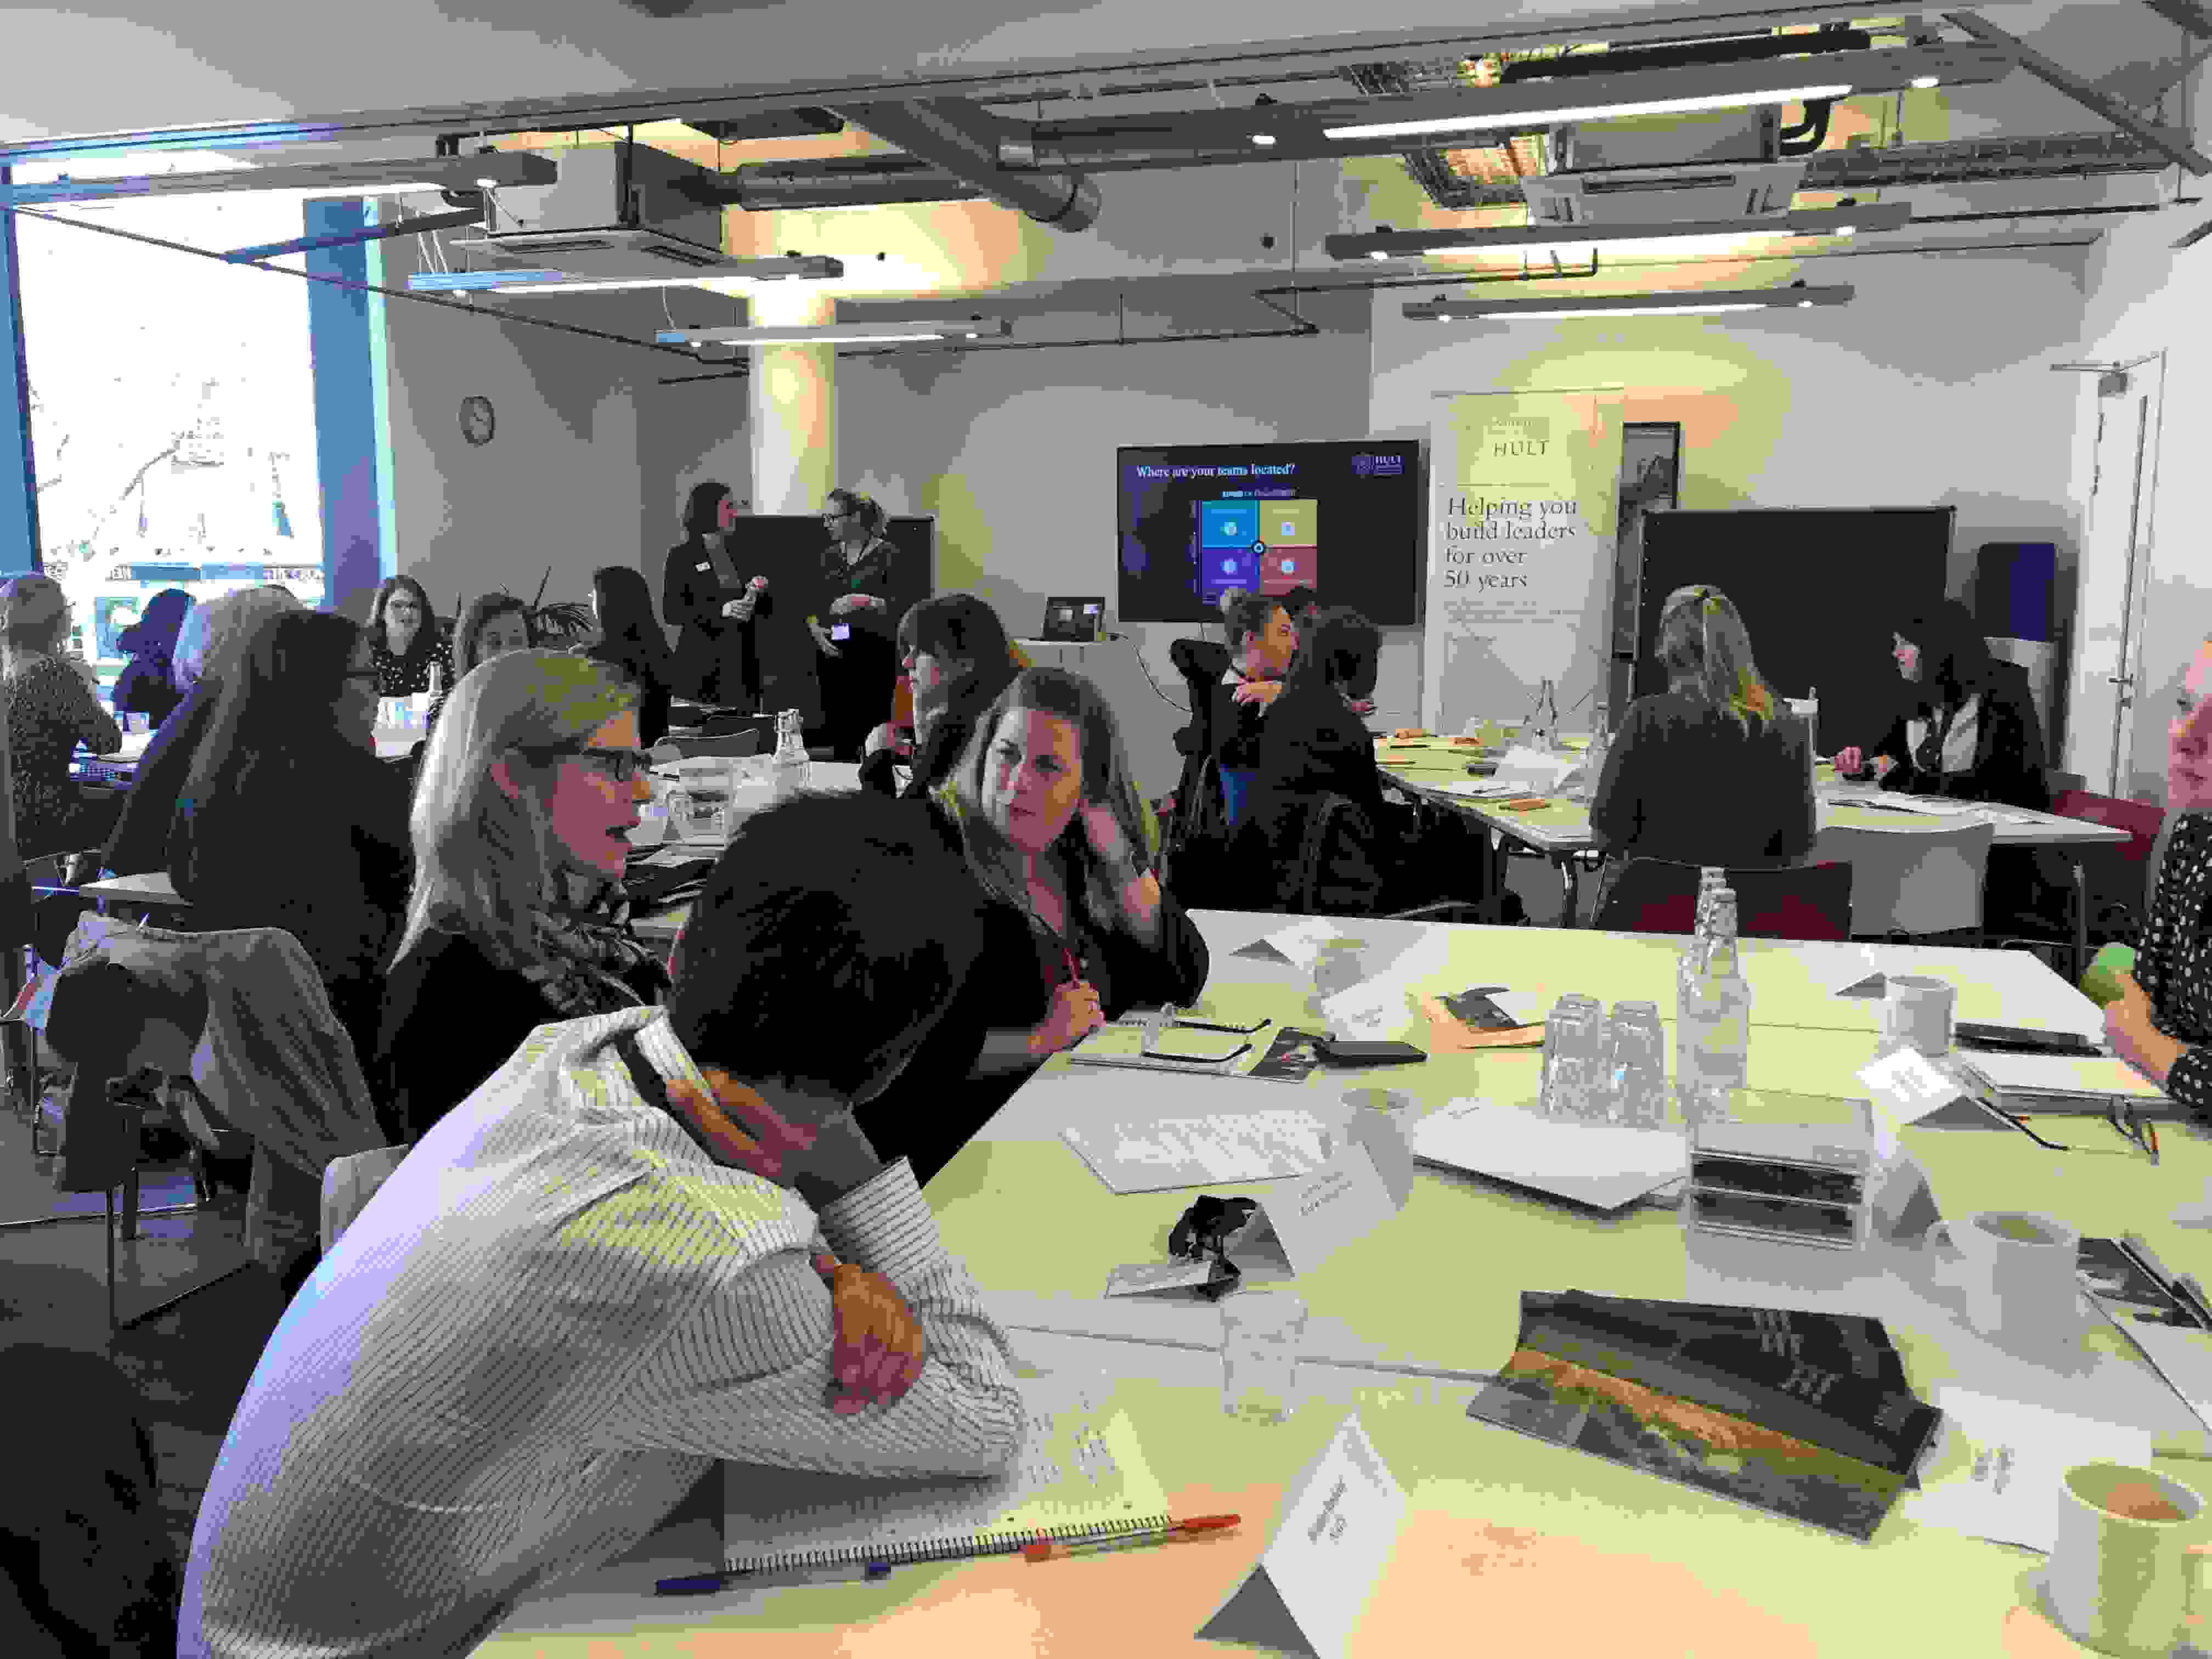 Busy conference room full of people